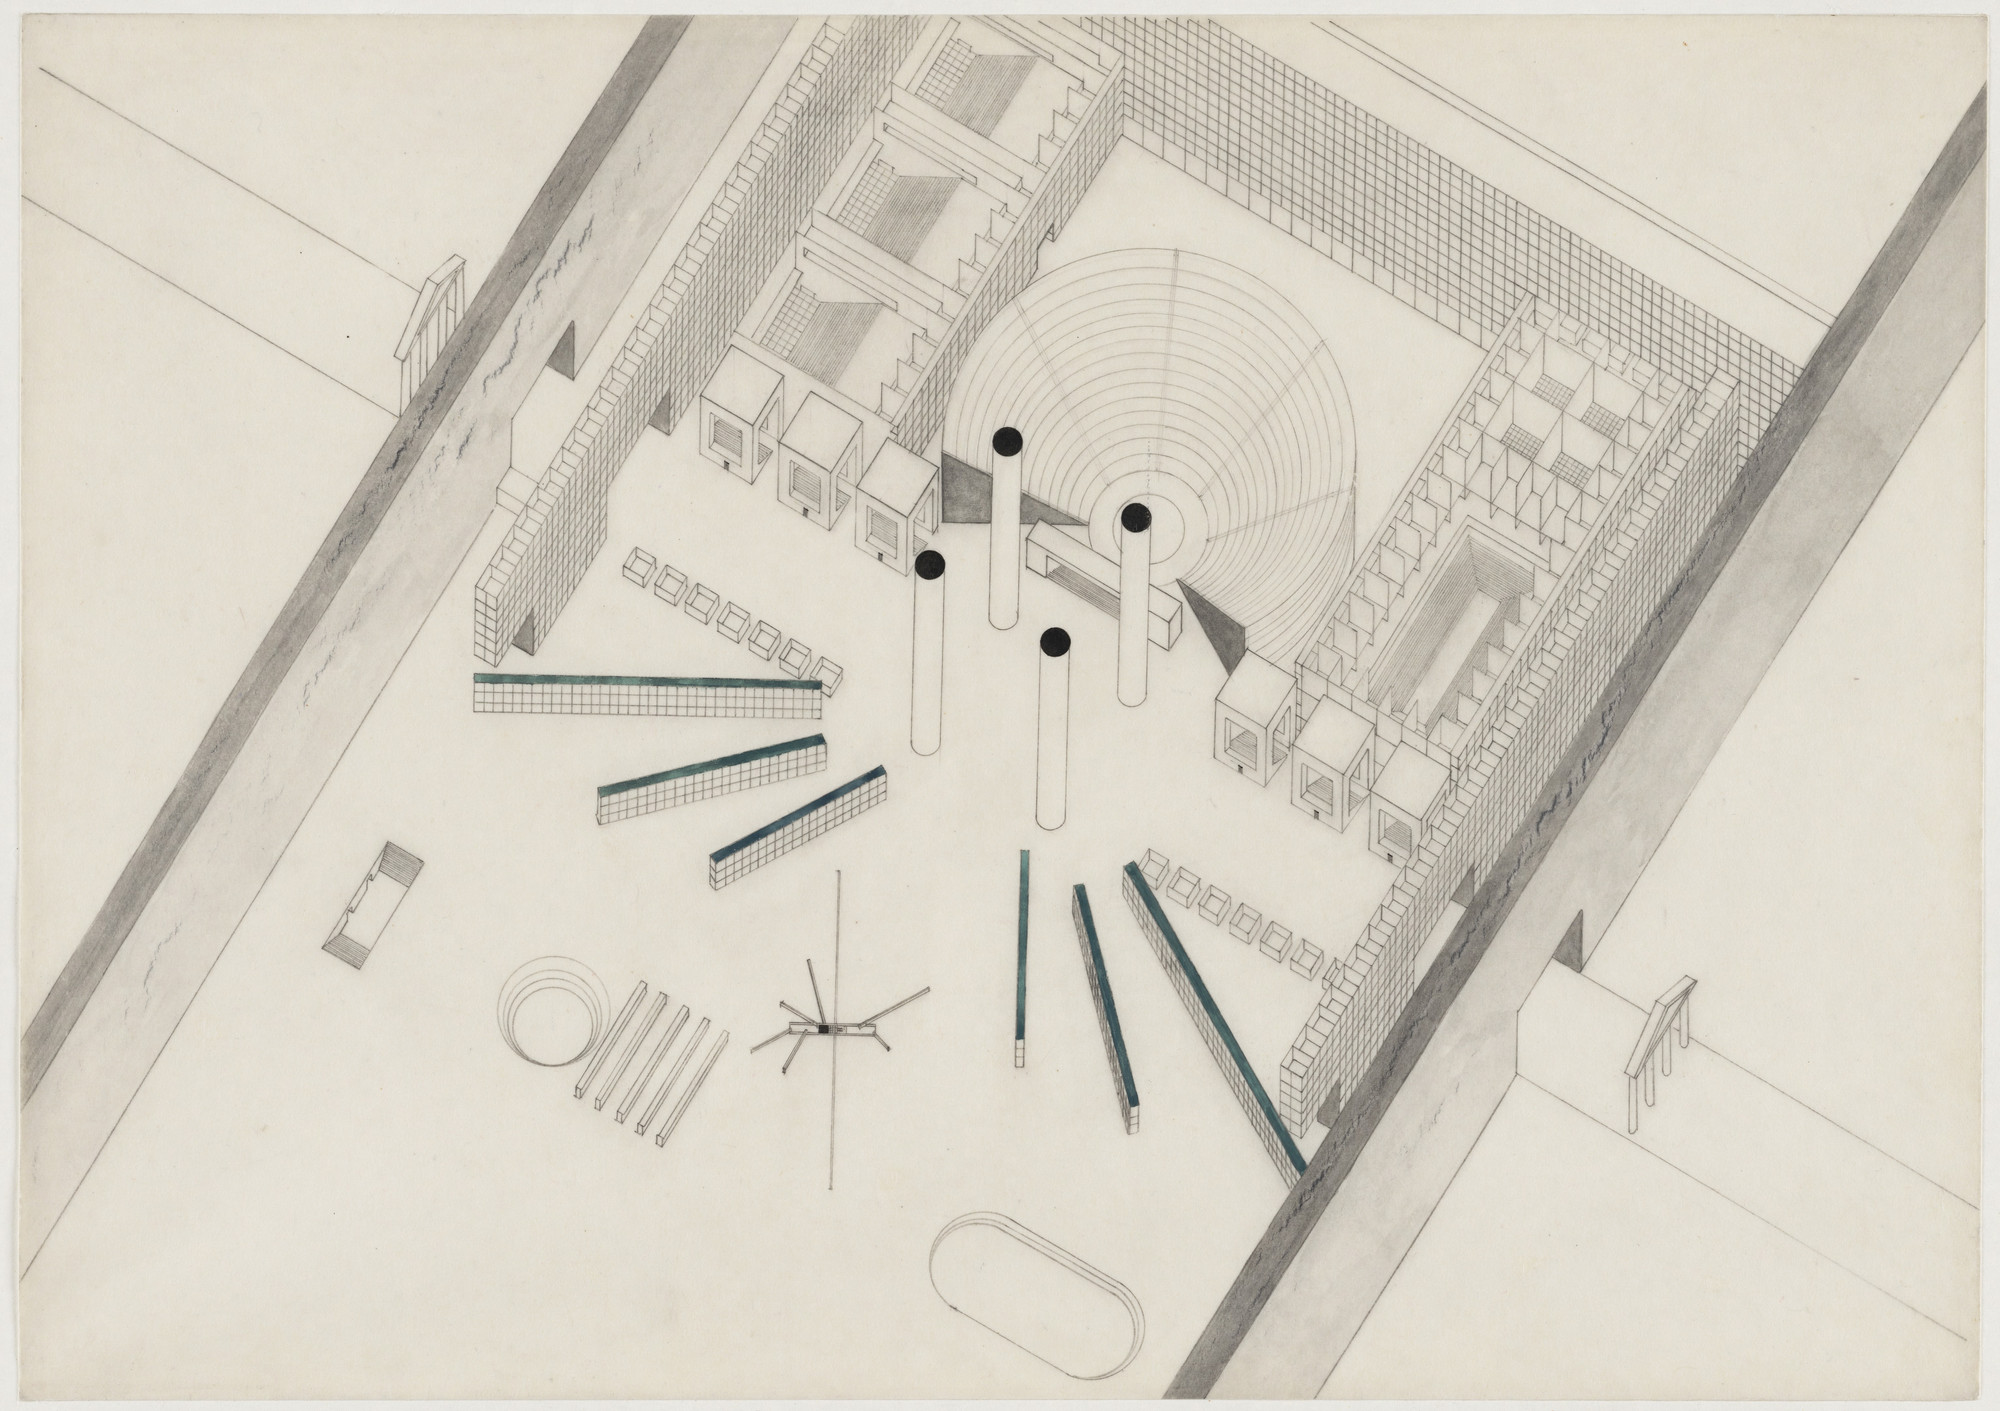 Rem Koolhaas, Elia Zenghelis, Madelon Vriesendorp, Zoe Zenghelis. Exodus, or the Voluntary Prisoners of Architecture: The Central Area (Plan). 1972